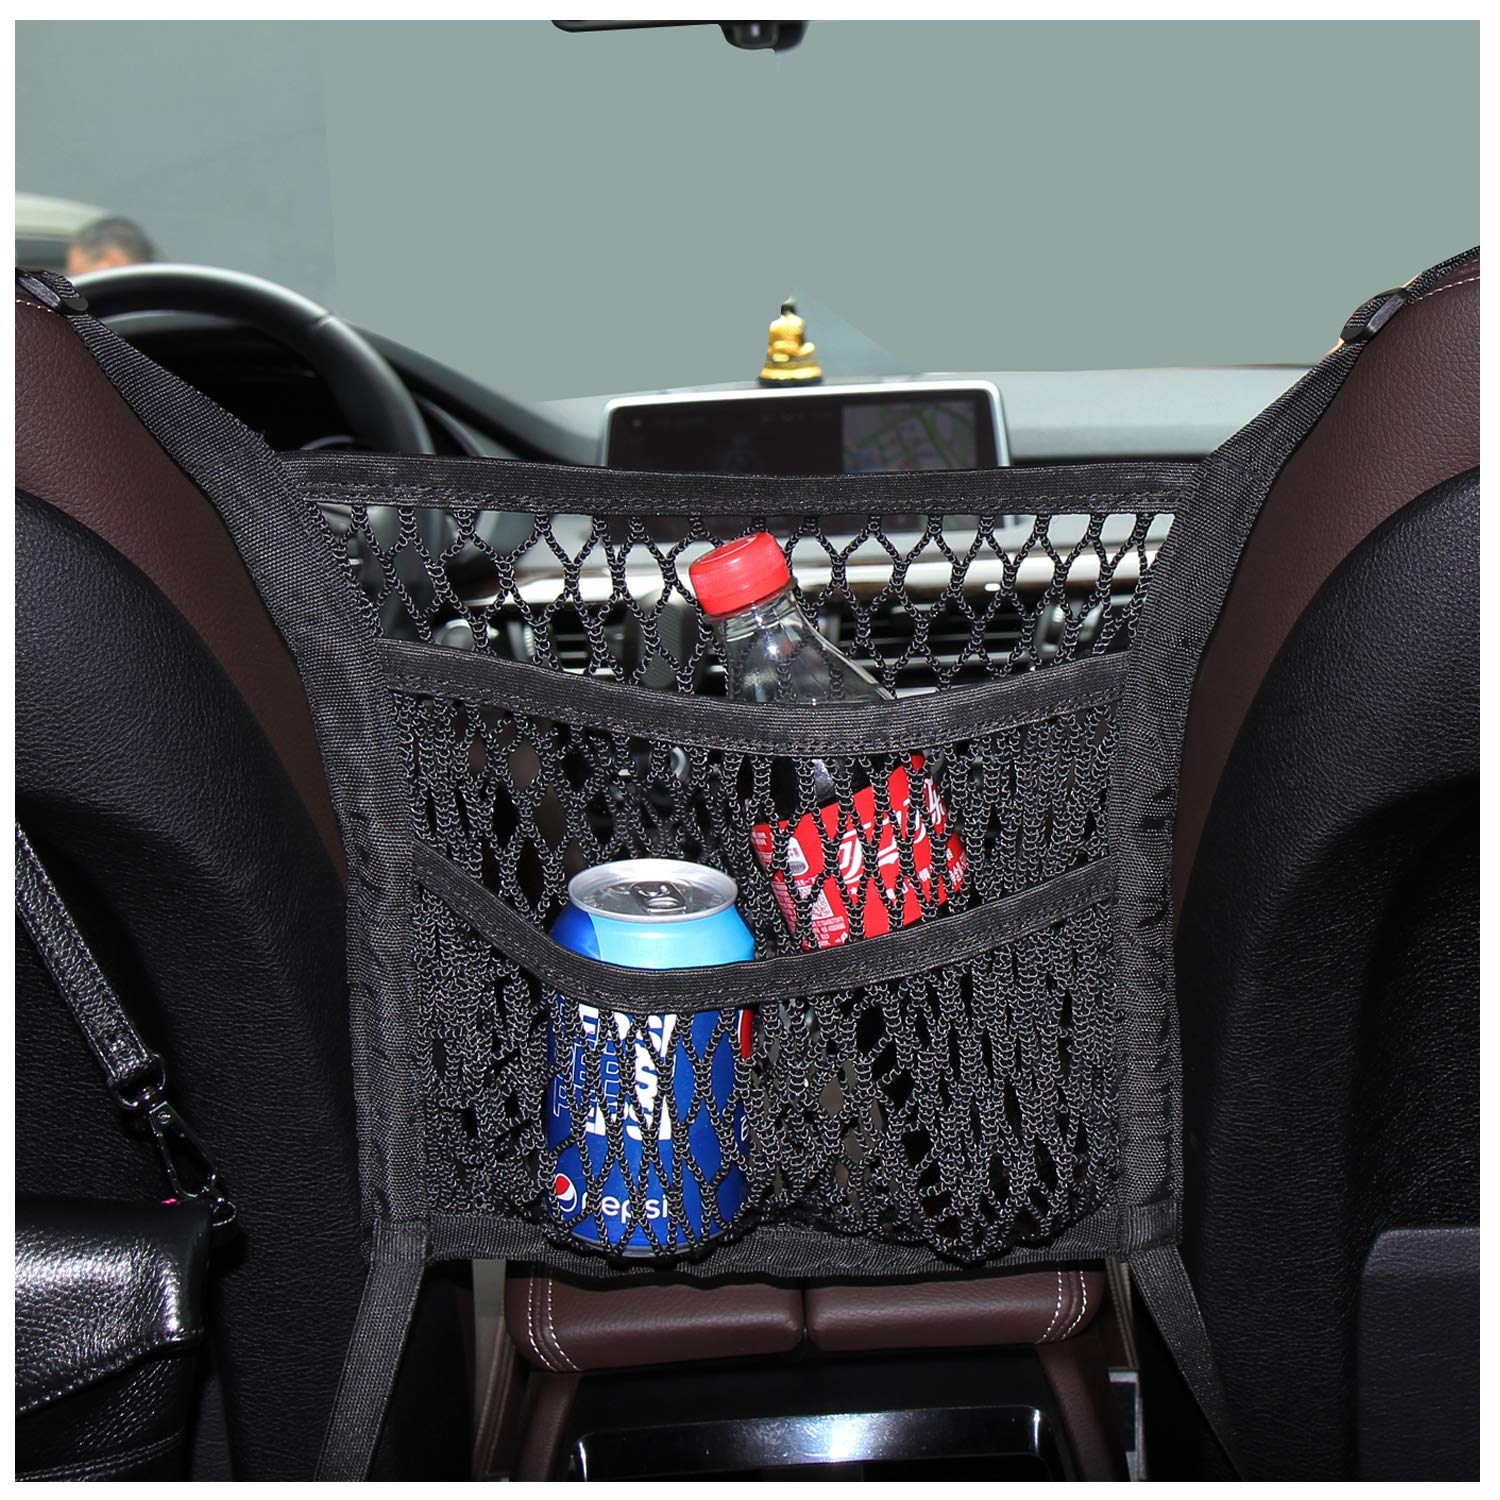 PU Leather Hanging Storage Bag Between Car Seats for Vehicle Durable Car Seat Storage and Handbag Holding Net eing Car Net Pocket Handbag Holder Car Seat Organiser